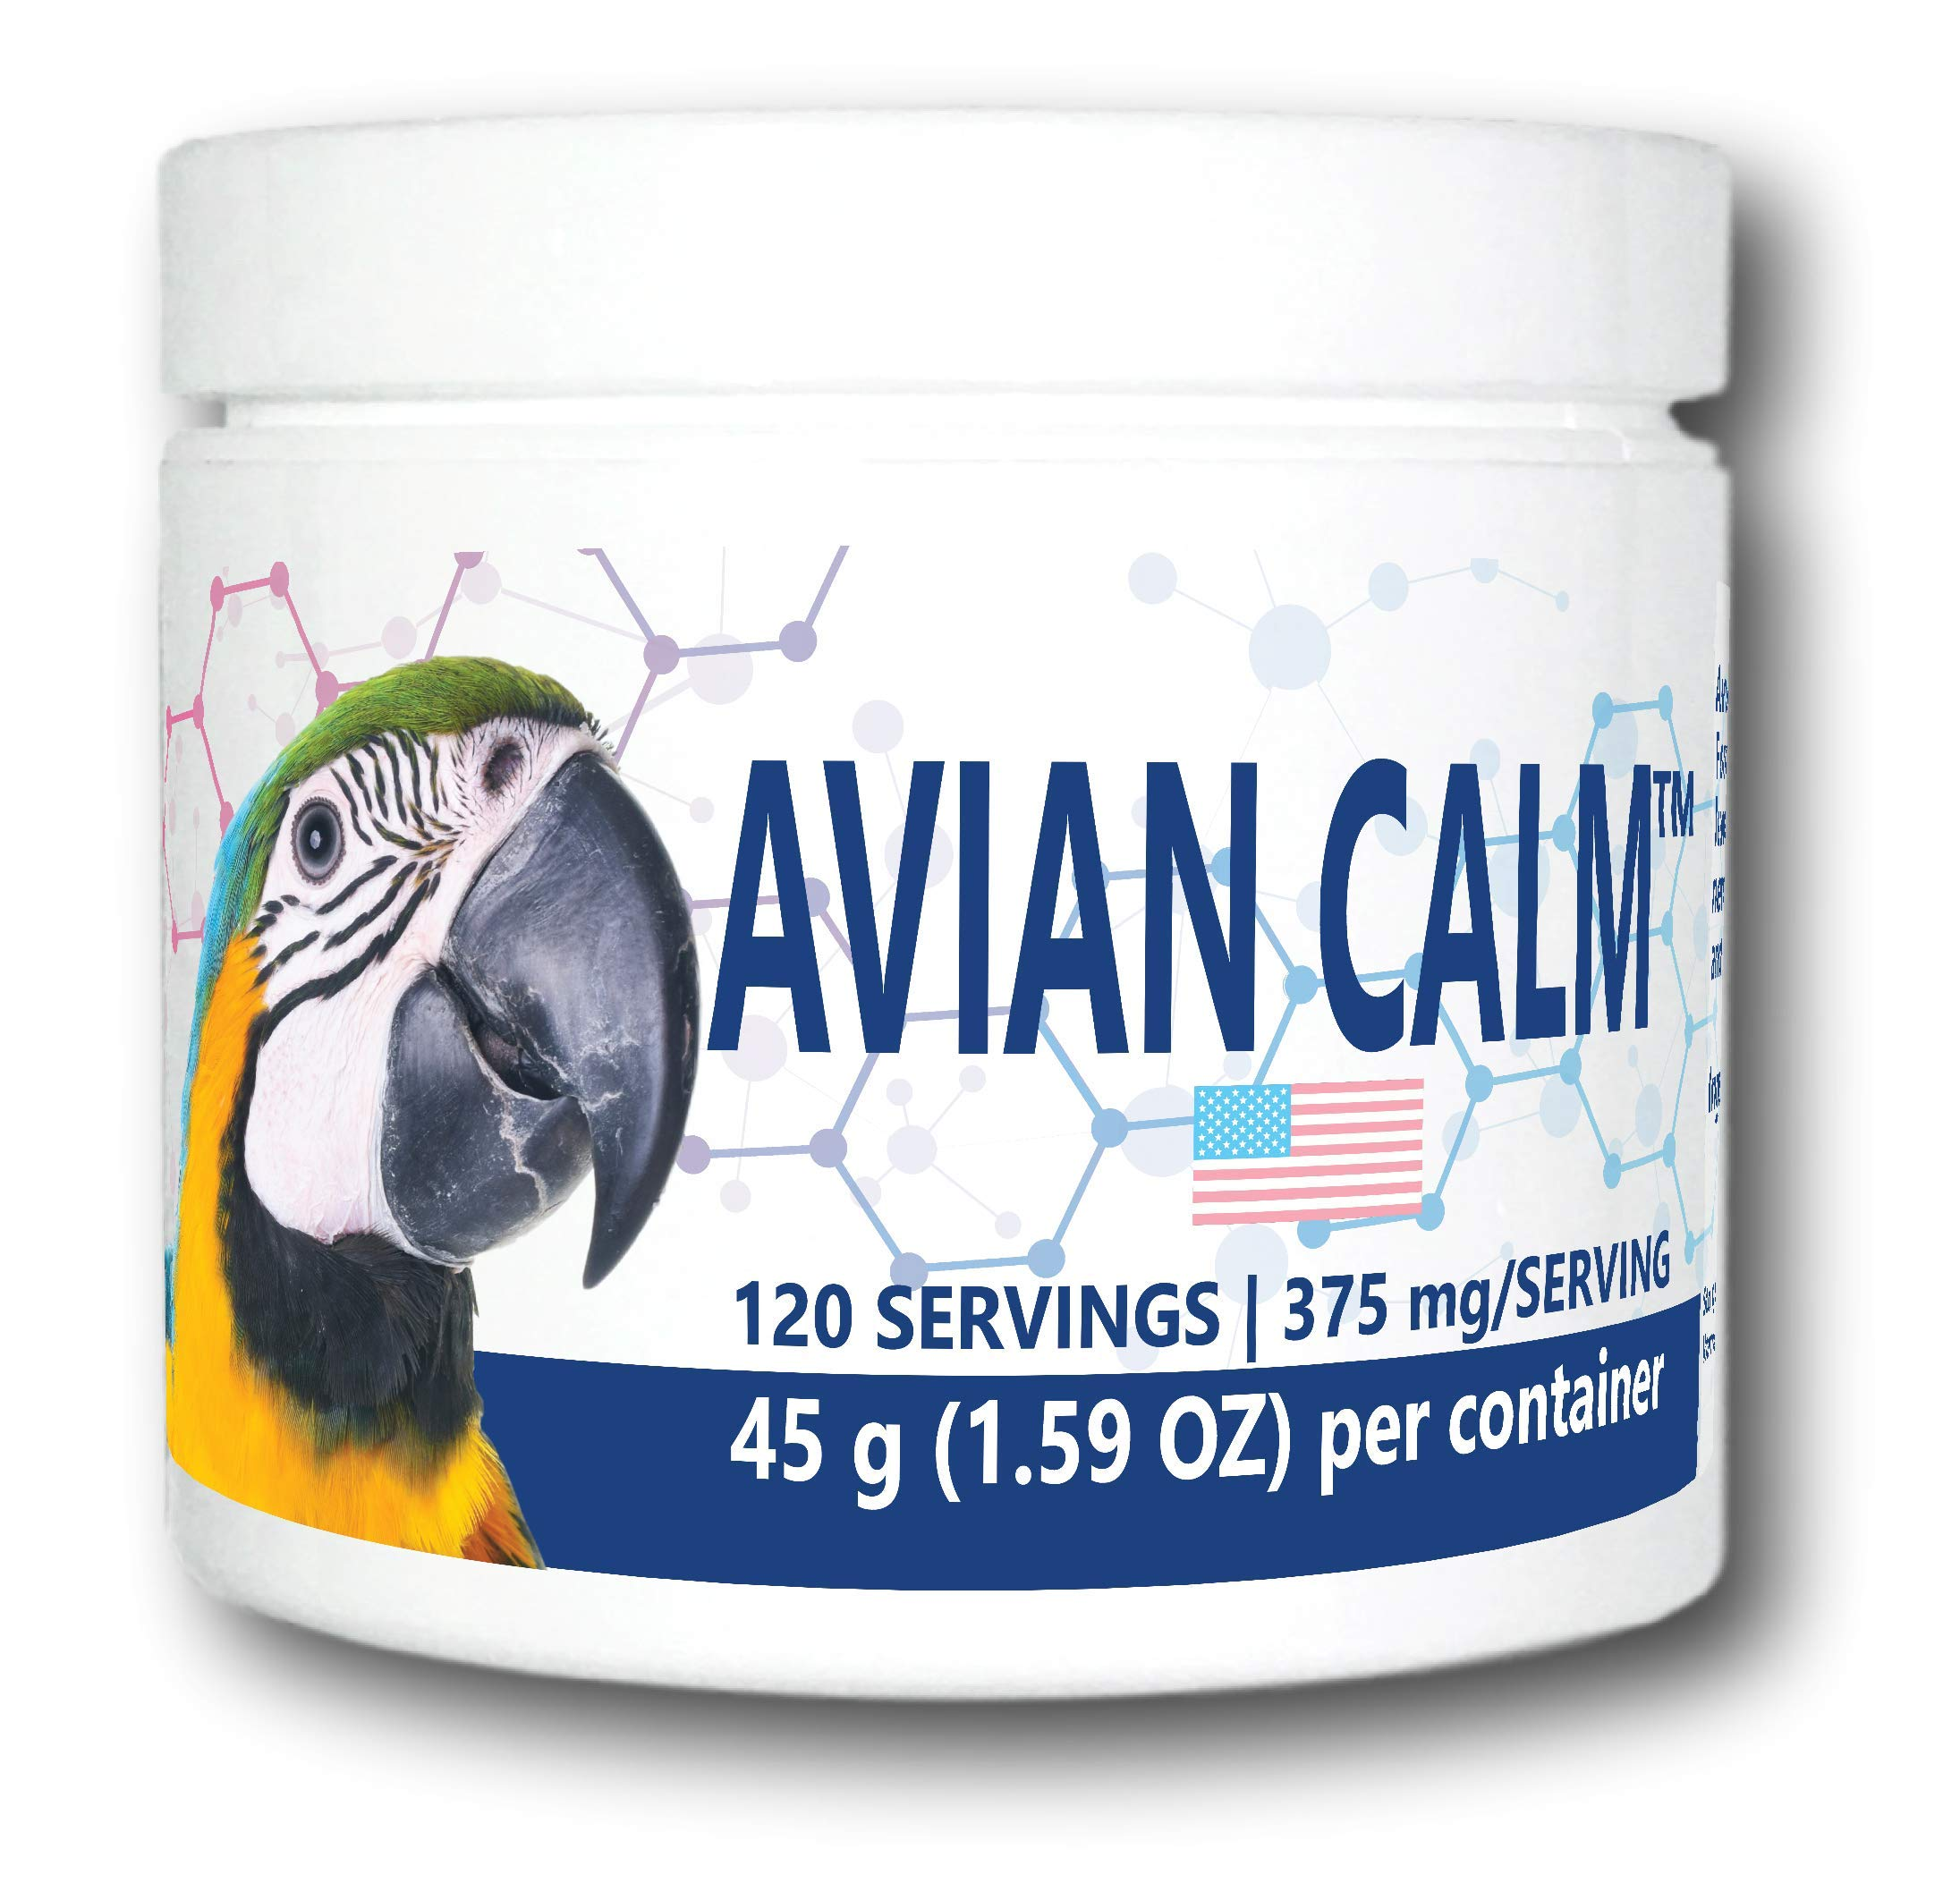 Equa Holistics, LLC. Avian Calm (120 Servings) by Equa Holistics, LLC.